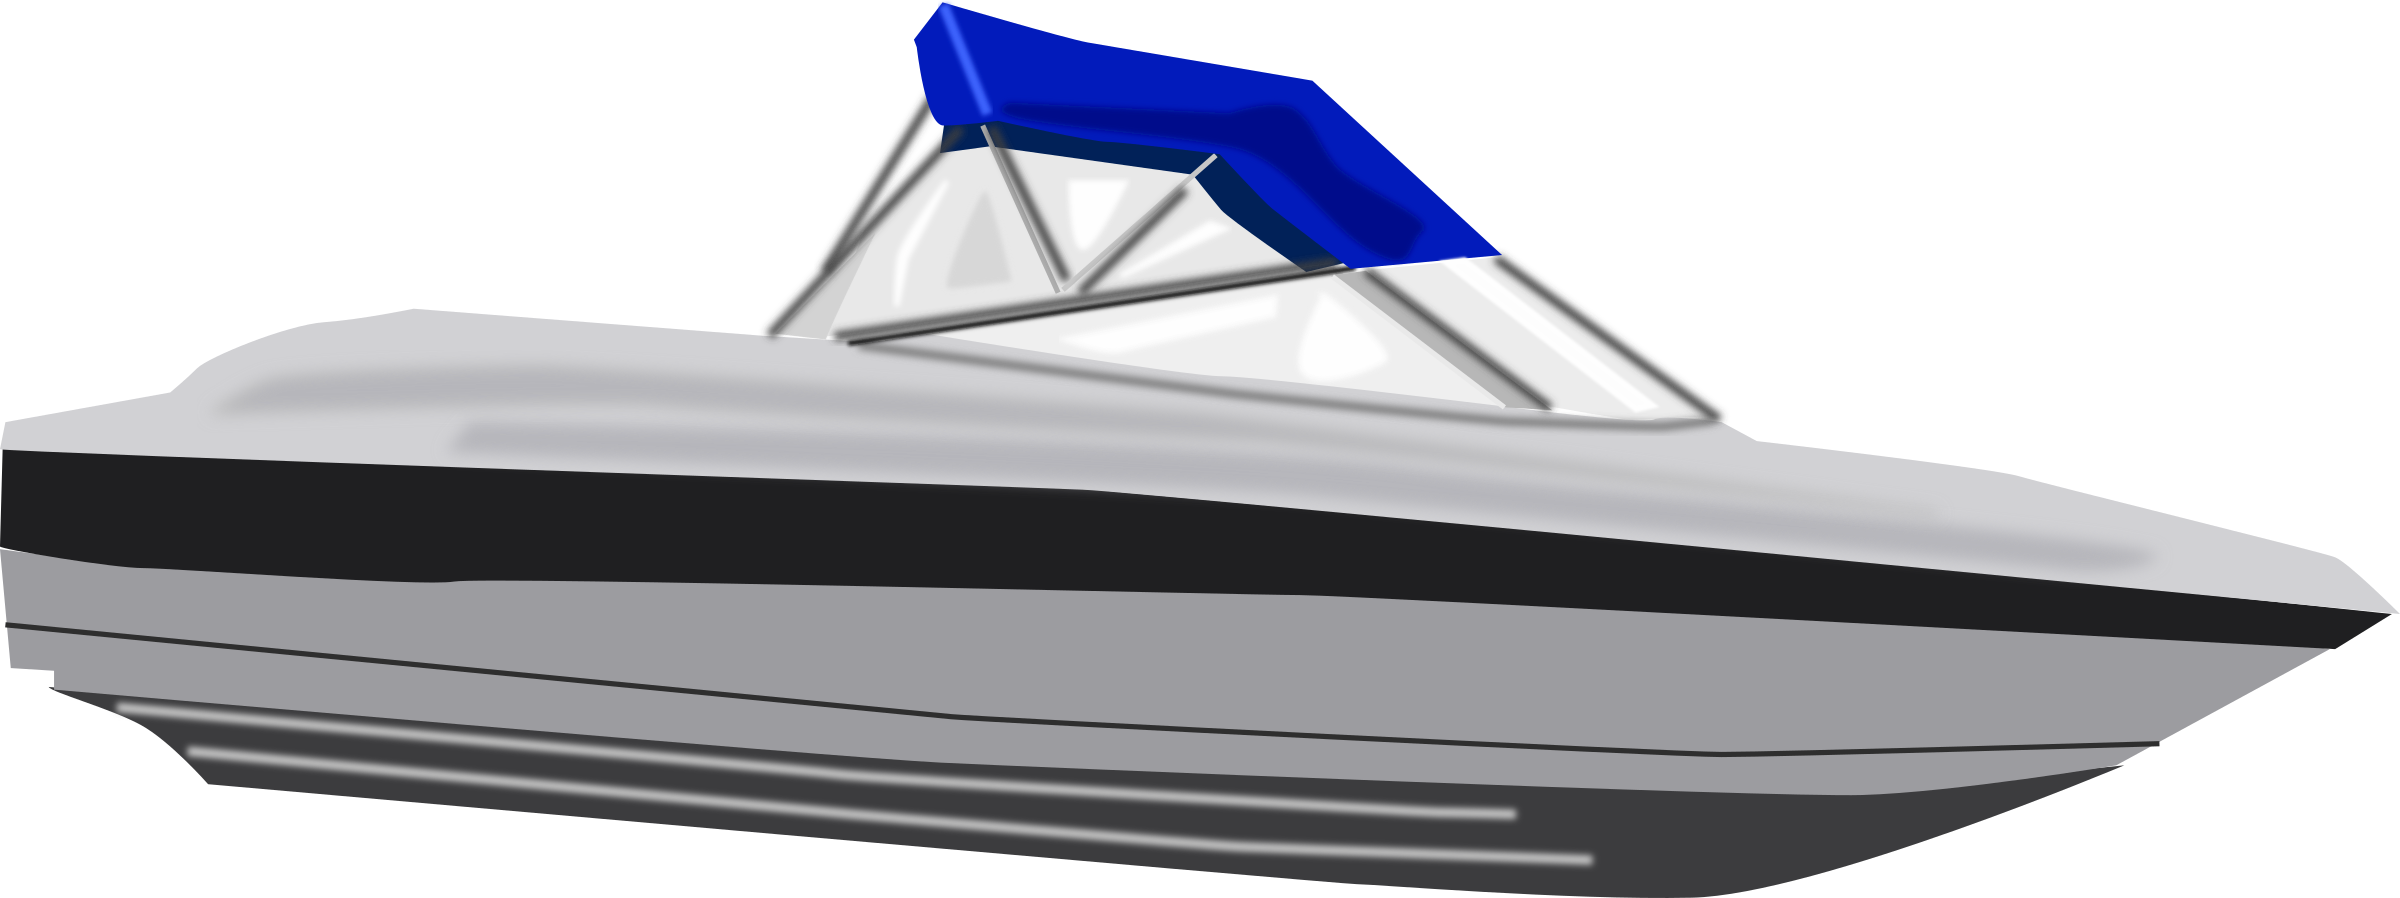 Boat clipart speed boat Boat Clipart Boat (6744) Free